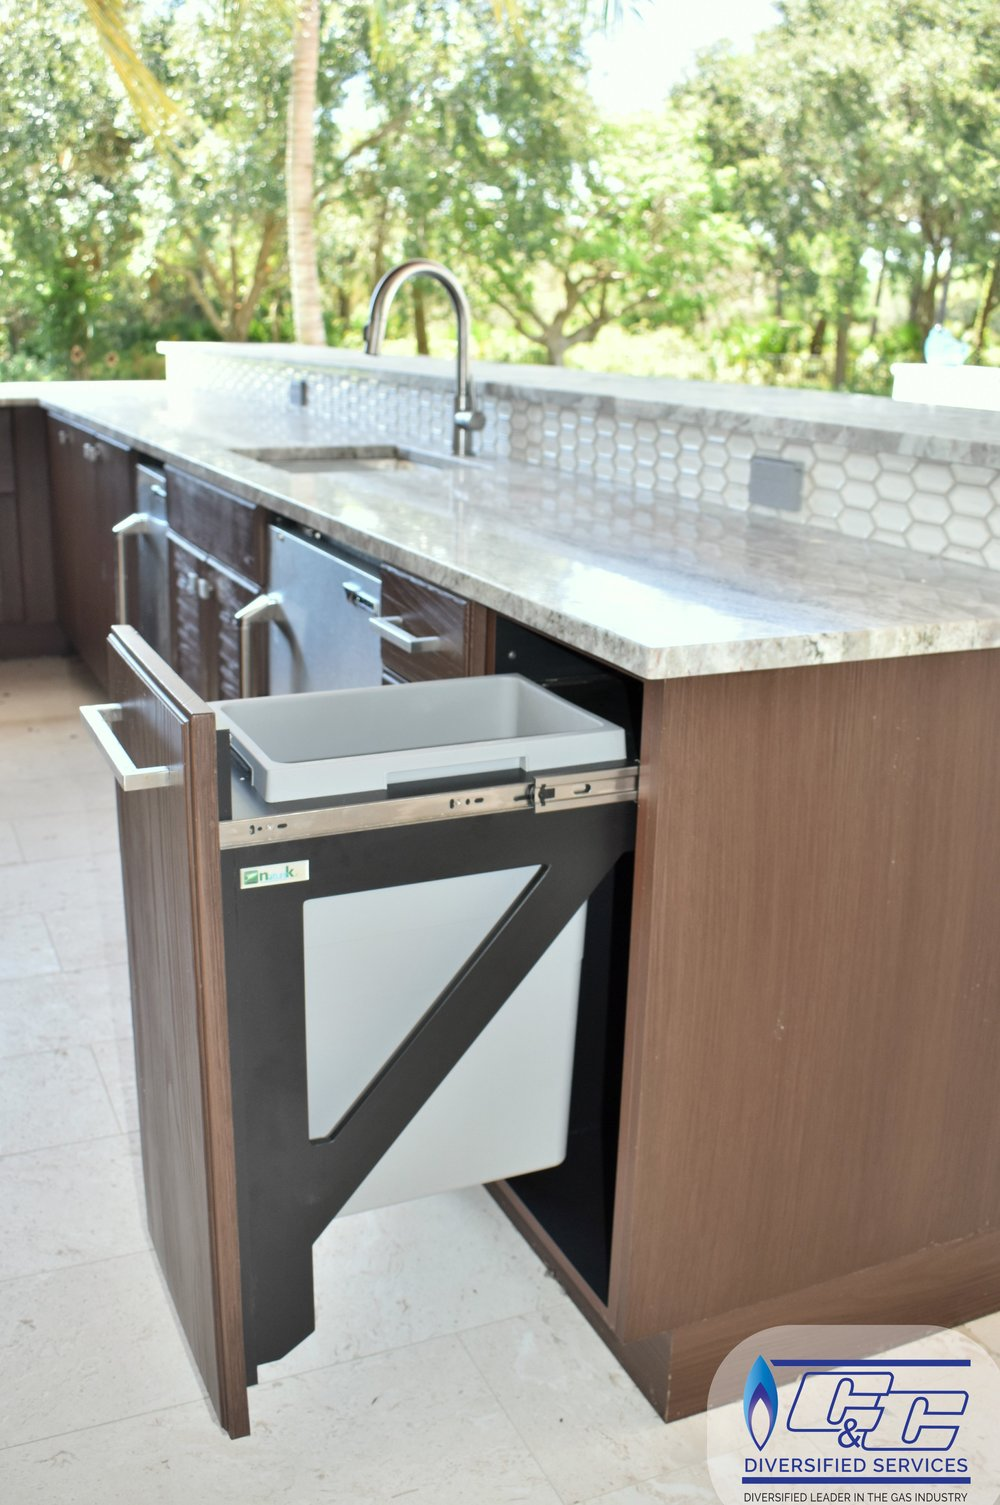 NatureKast Weatherproof Cabinetry - Waste Bin Cabinet